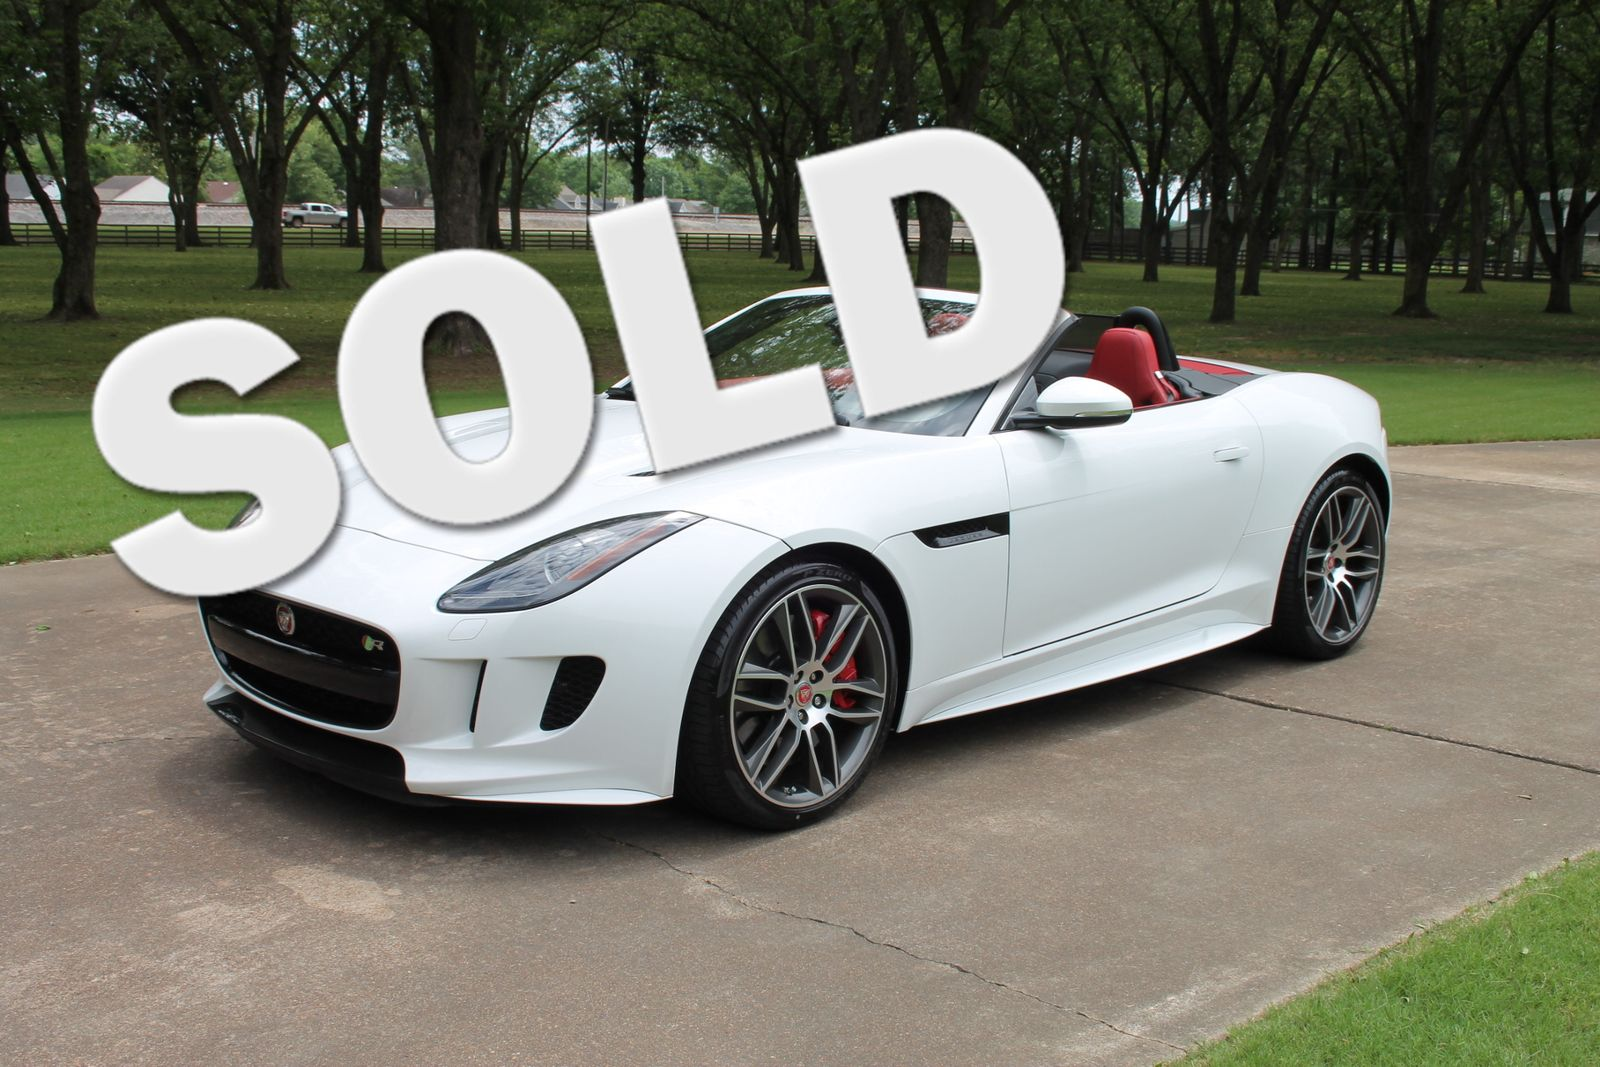 xkr fs sale central forums buy for convertible trade jaguar us private used img forum classifieds